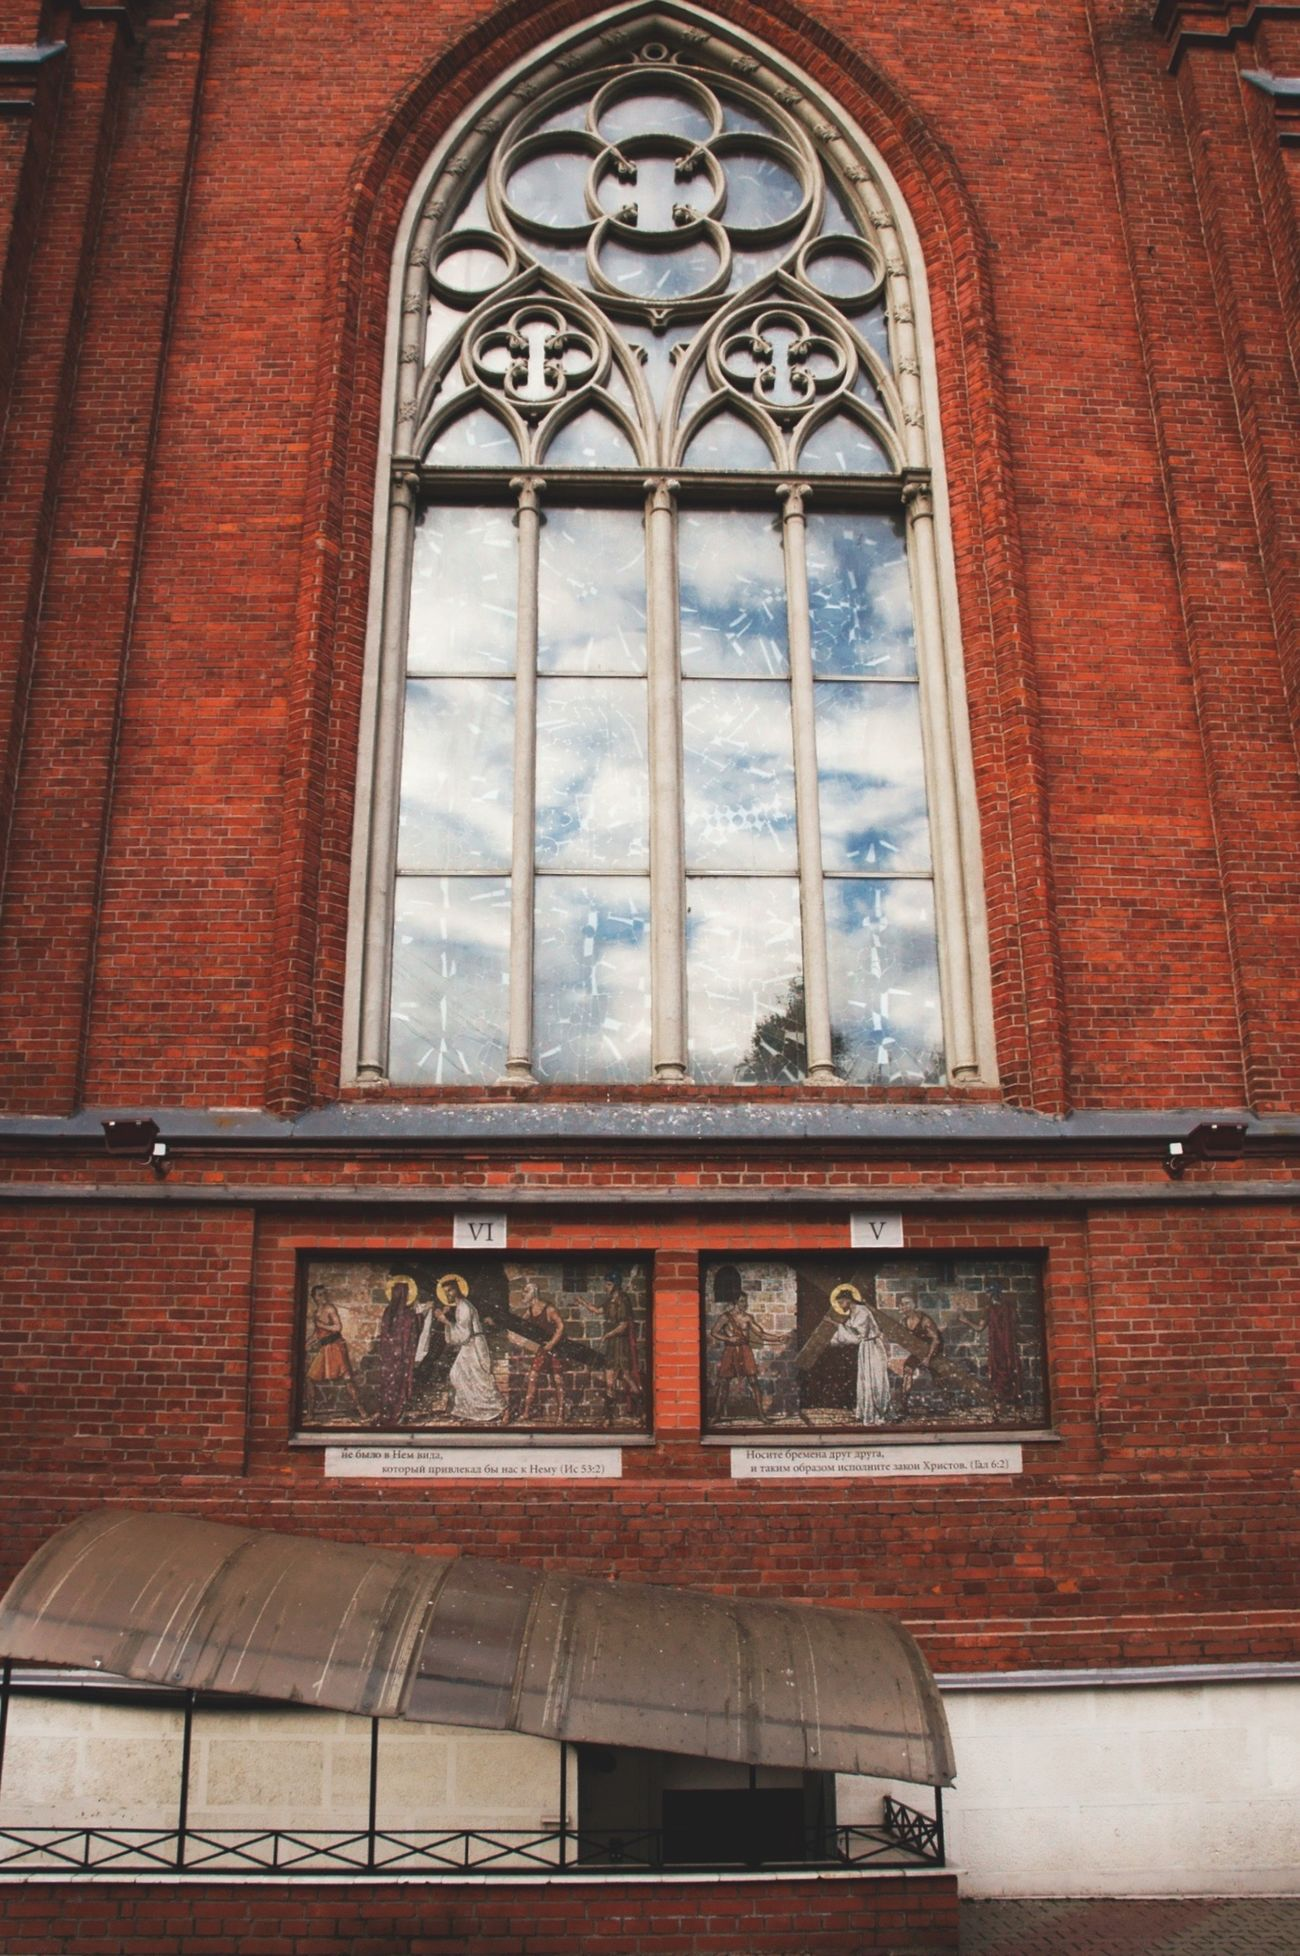 Taking Photos What I See Colors Walking Around Russia In The City Moscow City Architecture From Russia With Love Gothic Gothic Architecture Gothic Church Roman Catholic Church Roman Catholic Cathedral Other Perspectives 21 Century XXI  Wall Walking